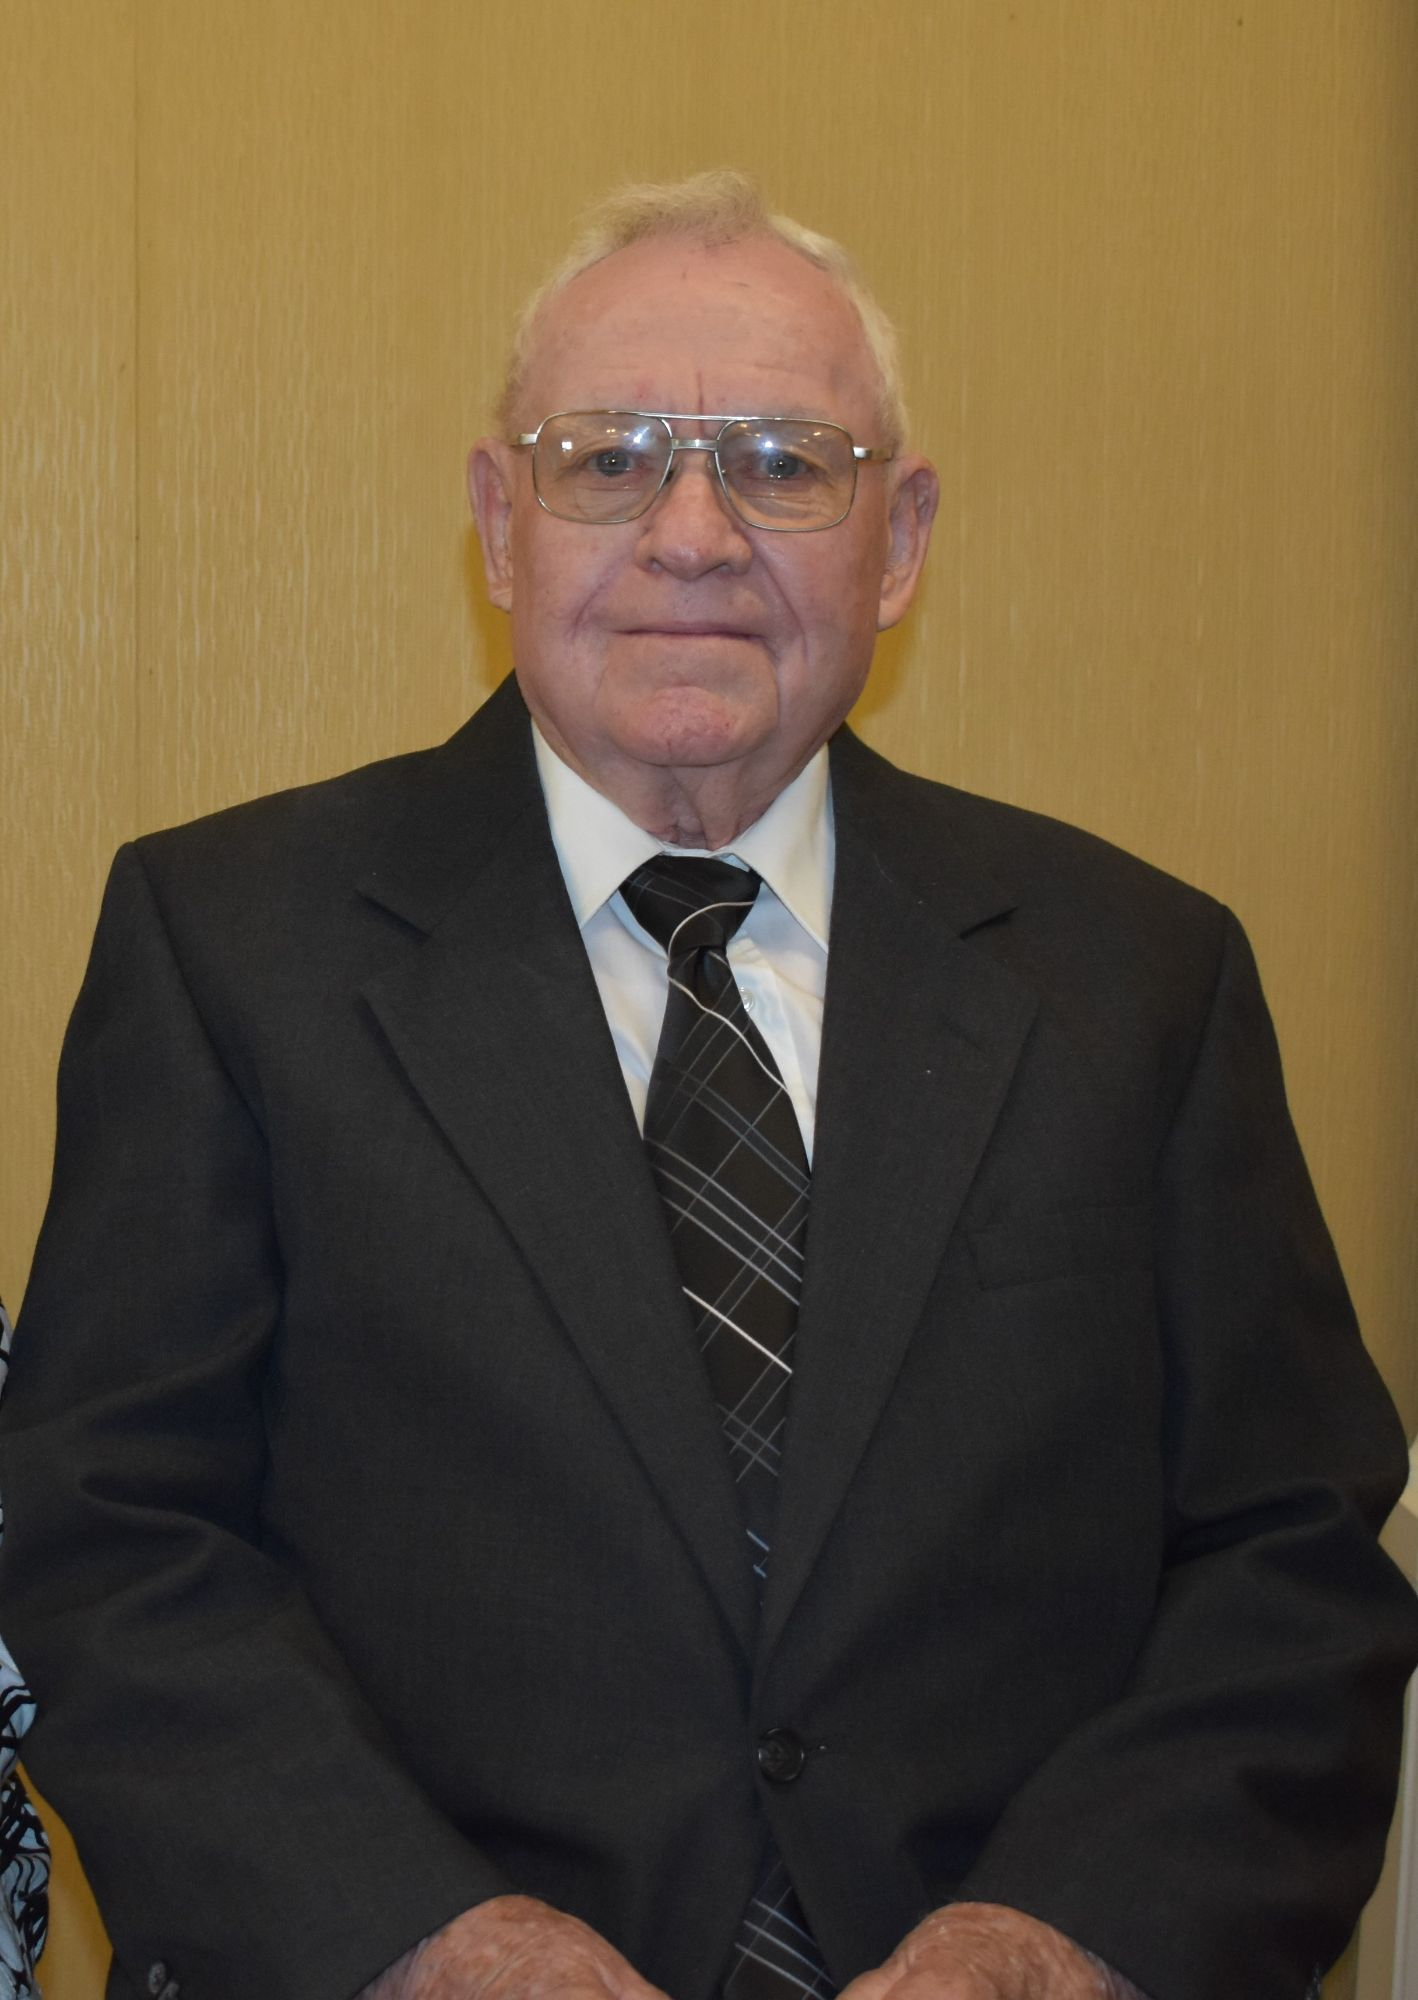 Photo of Hugh Terwilliger - Funeral Assistant